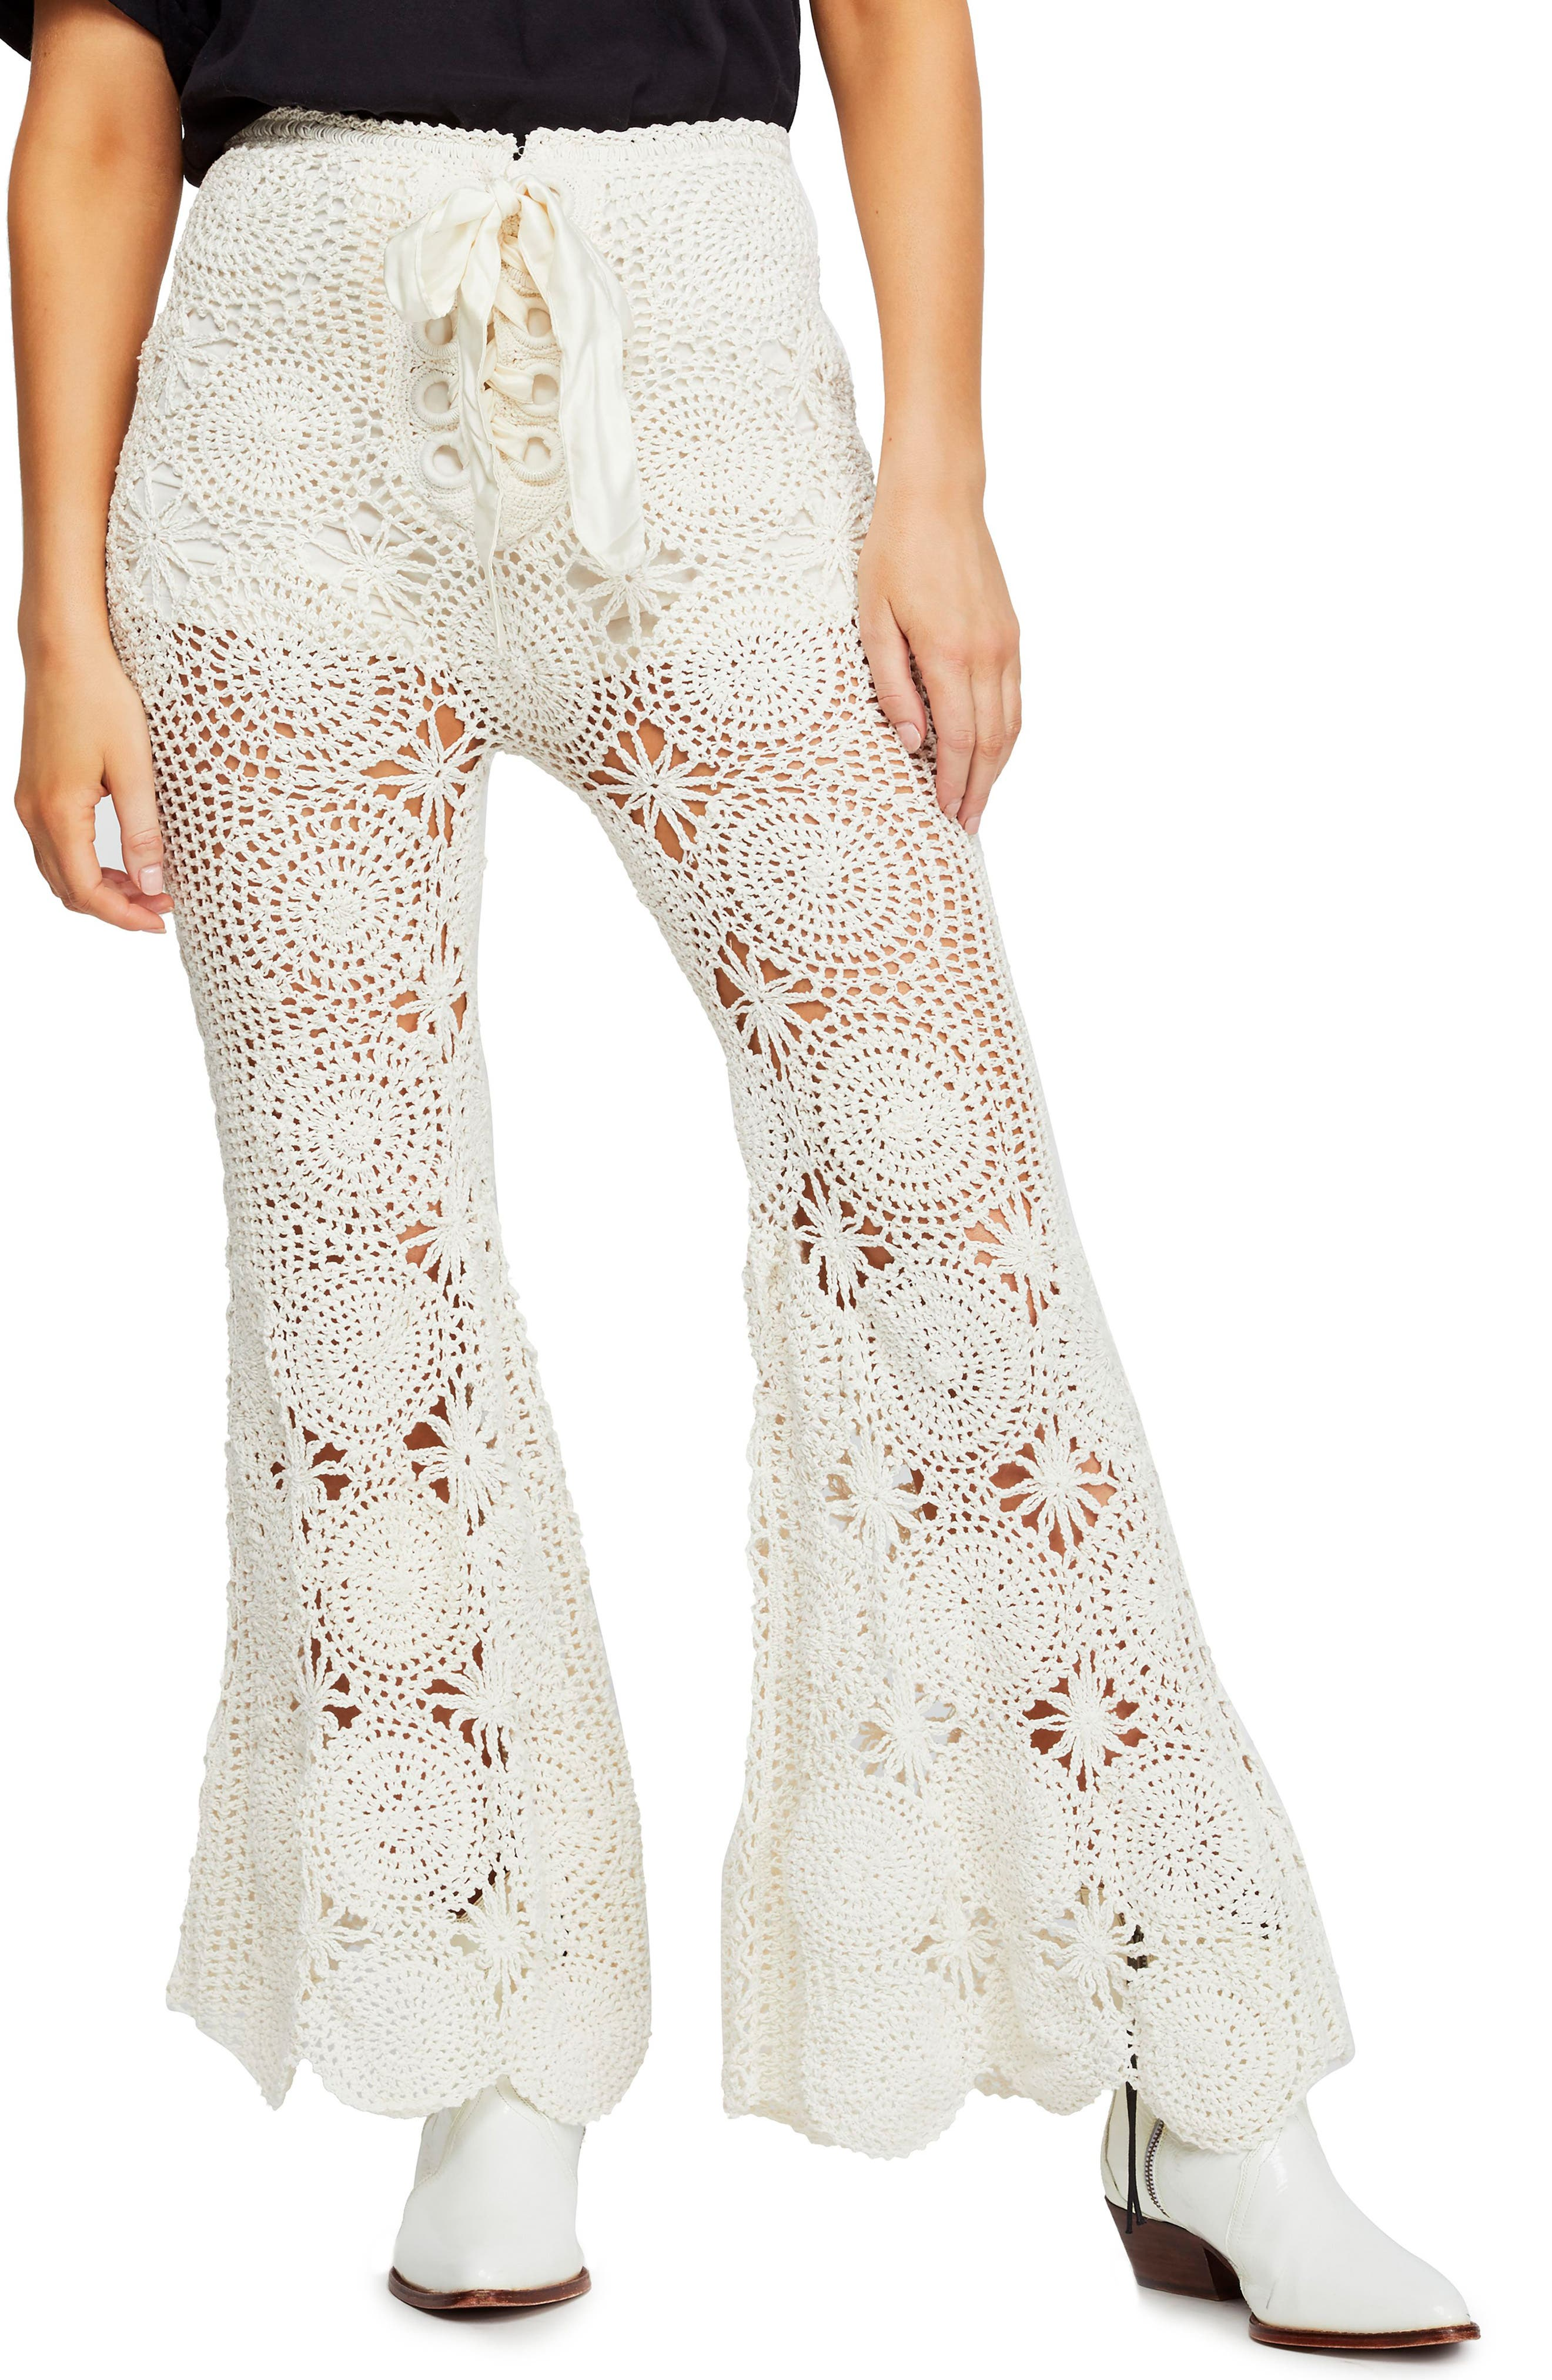 Vintage High Waisted Trousers, Sailor Pants, Jeans Womens Free People Crochet Lace Flare Pants Size X-Small - Ivory $148.80 AT vintagedancer.com